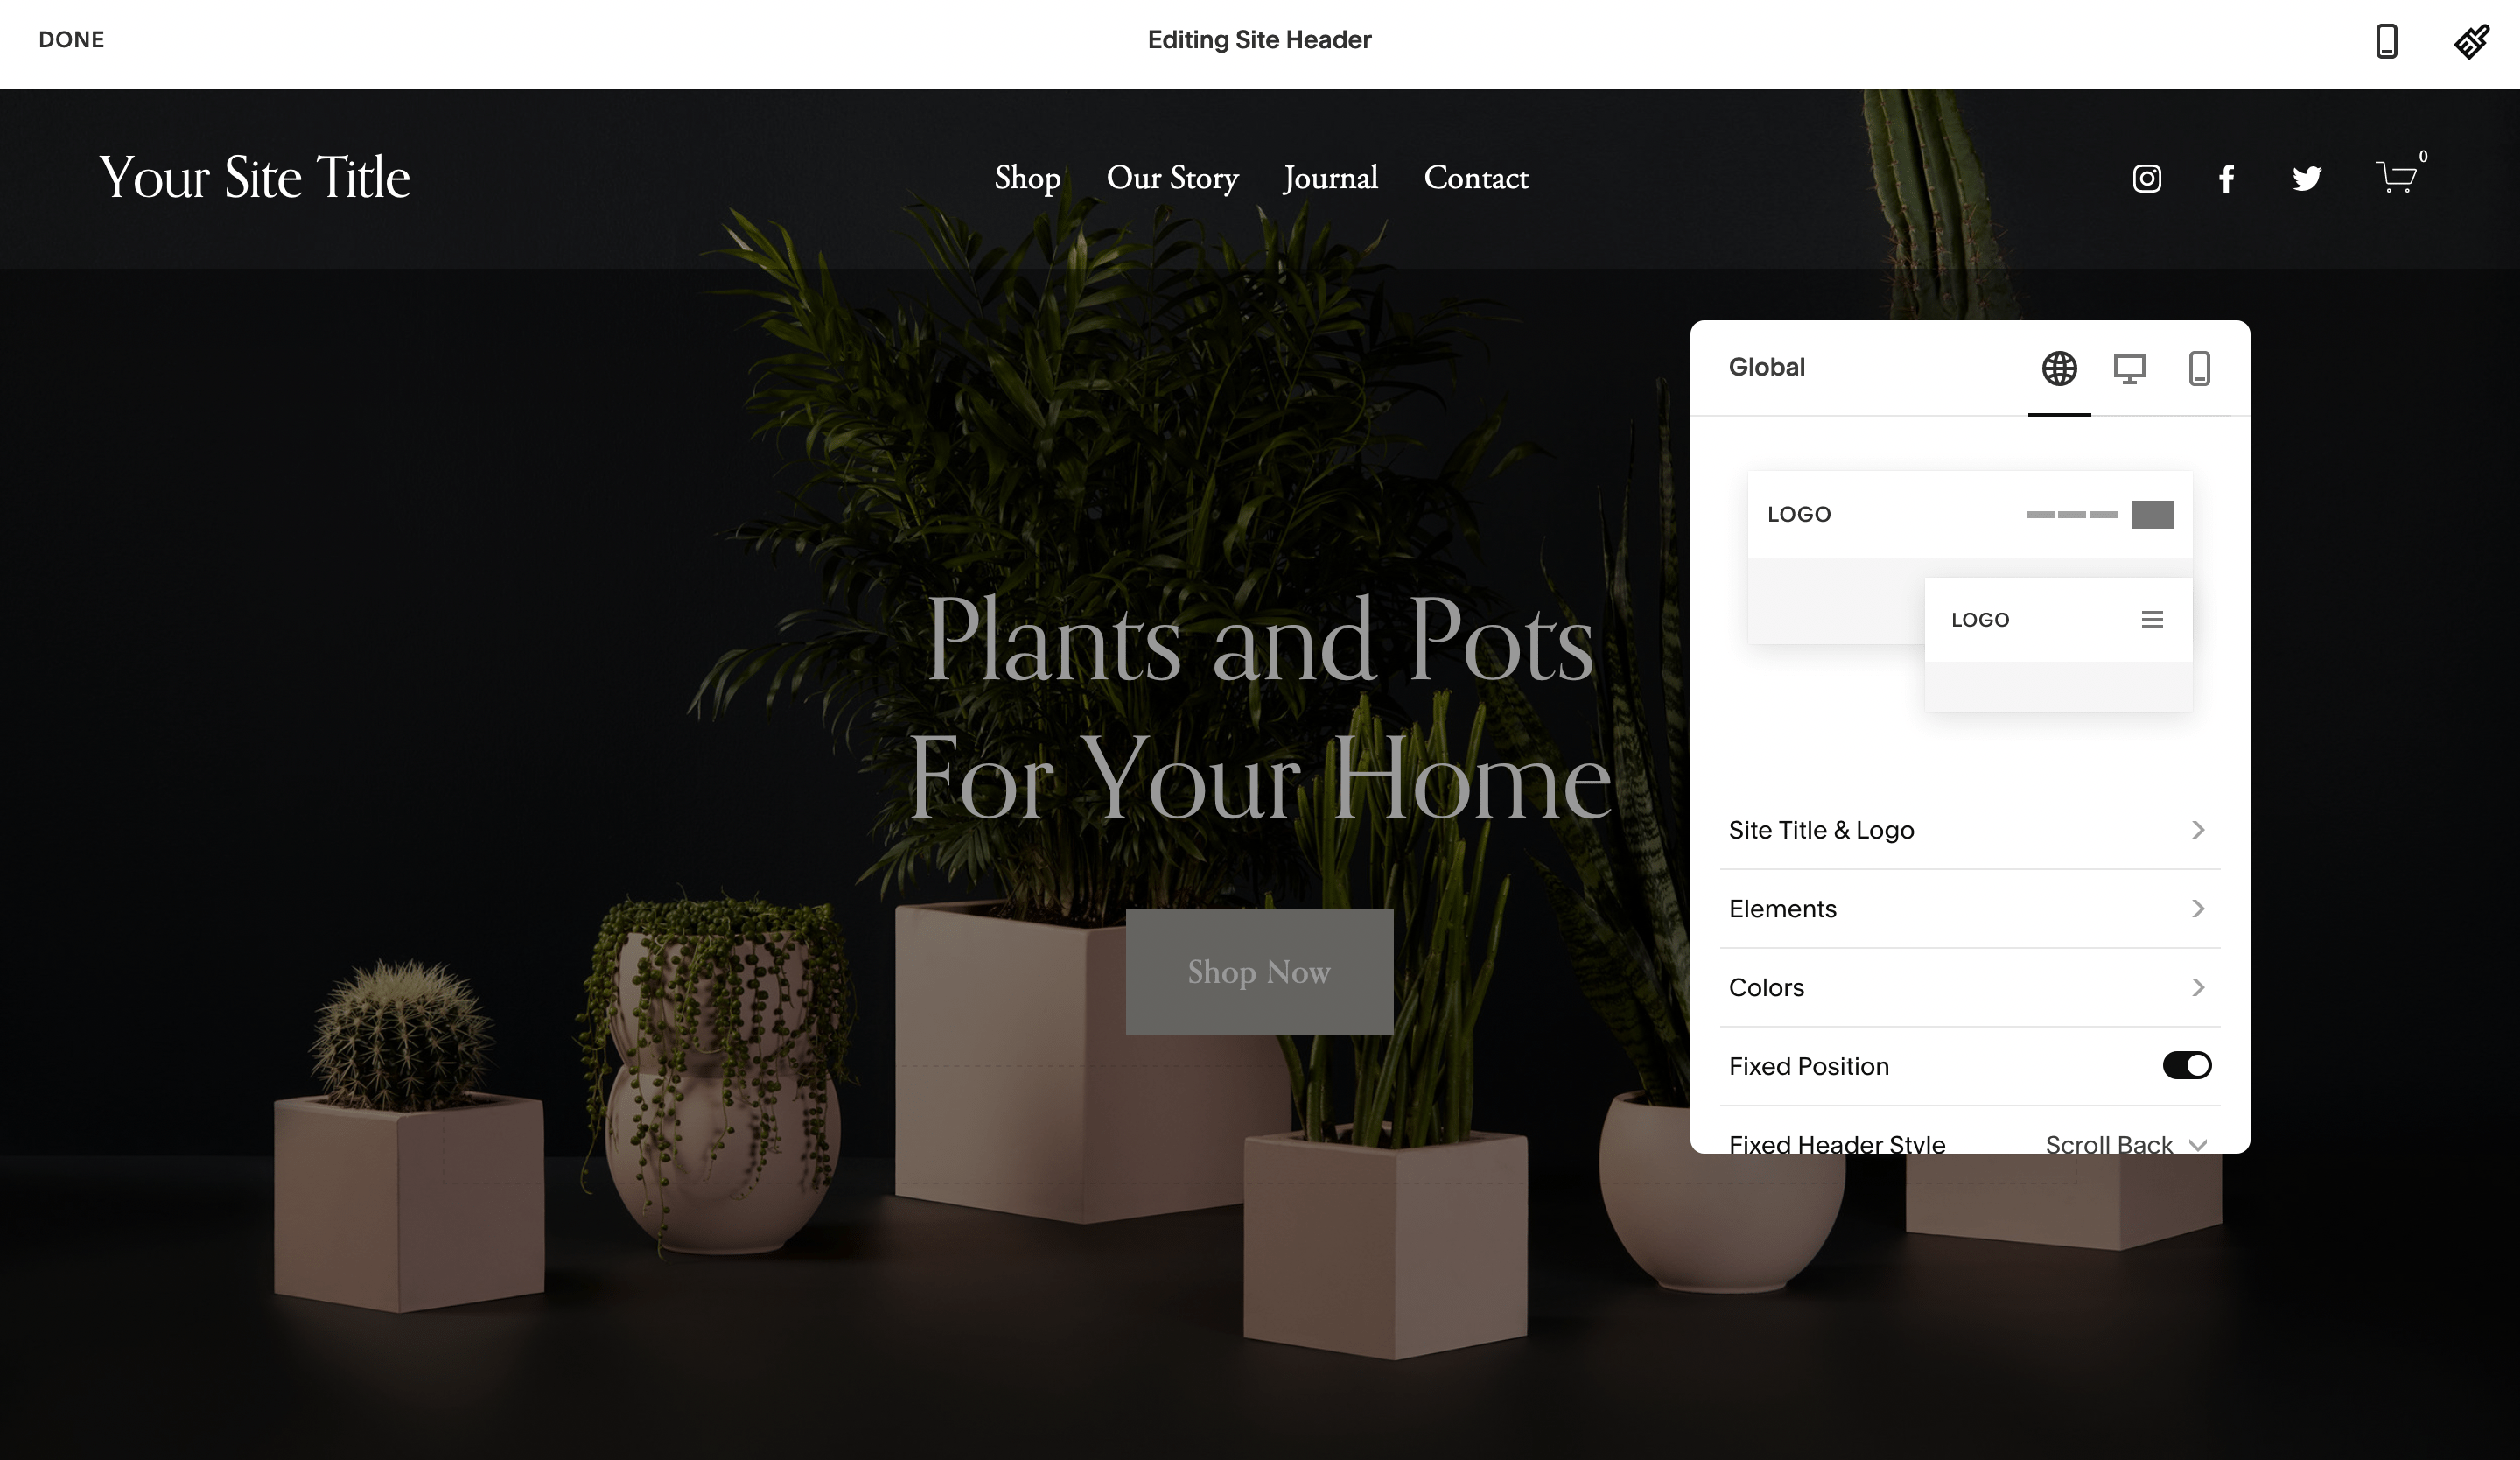 Editing a header in Squarespace.